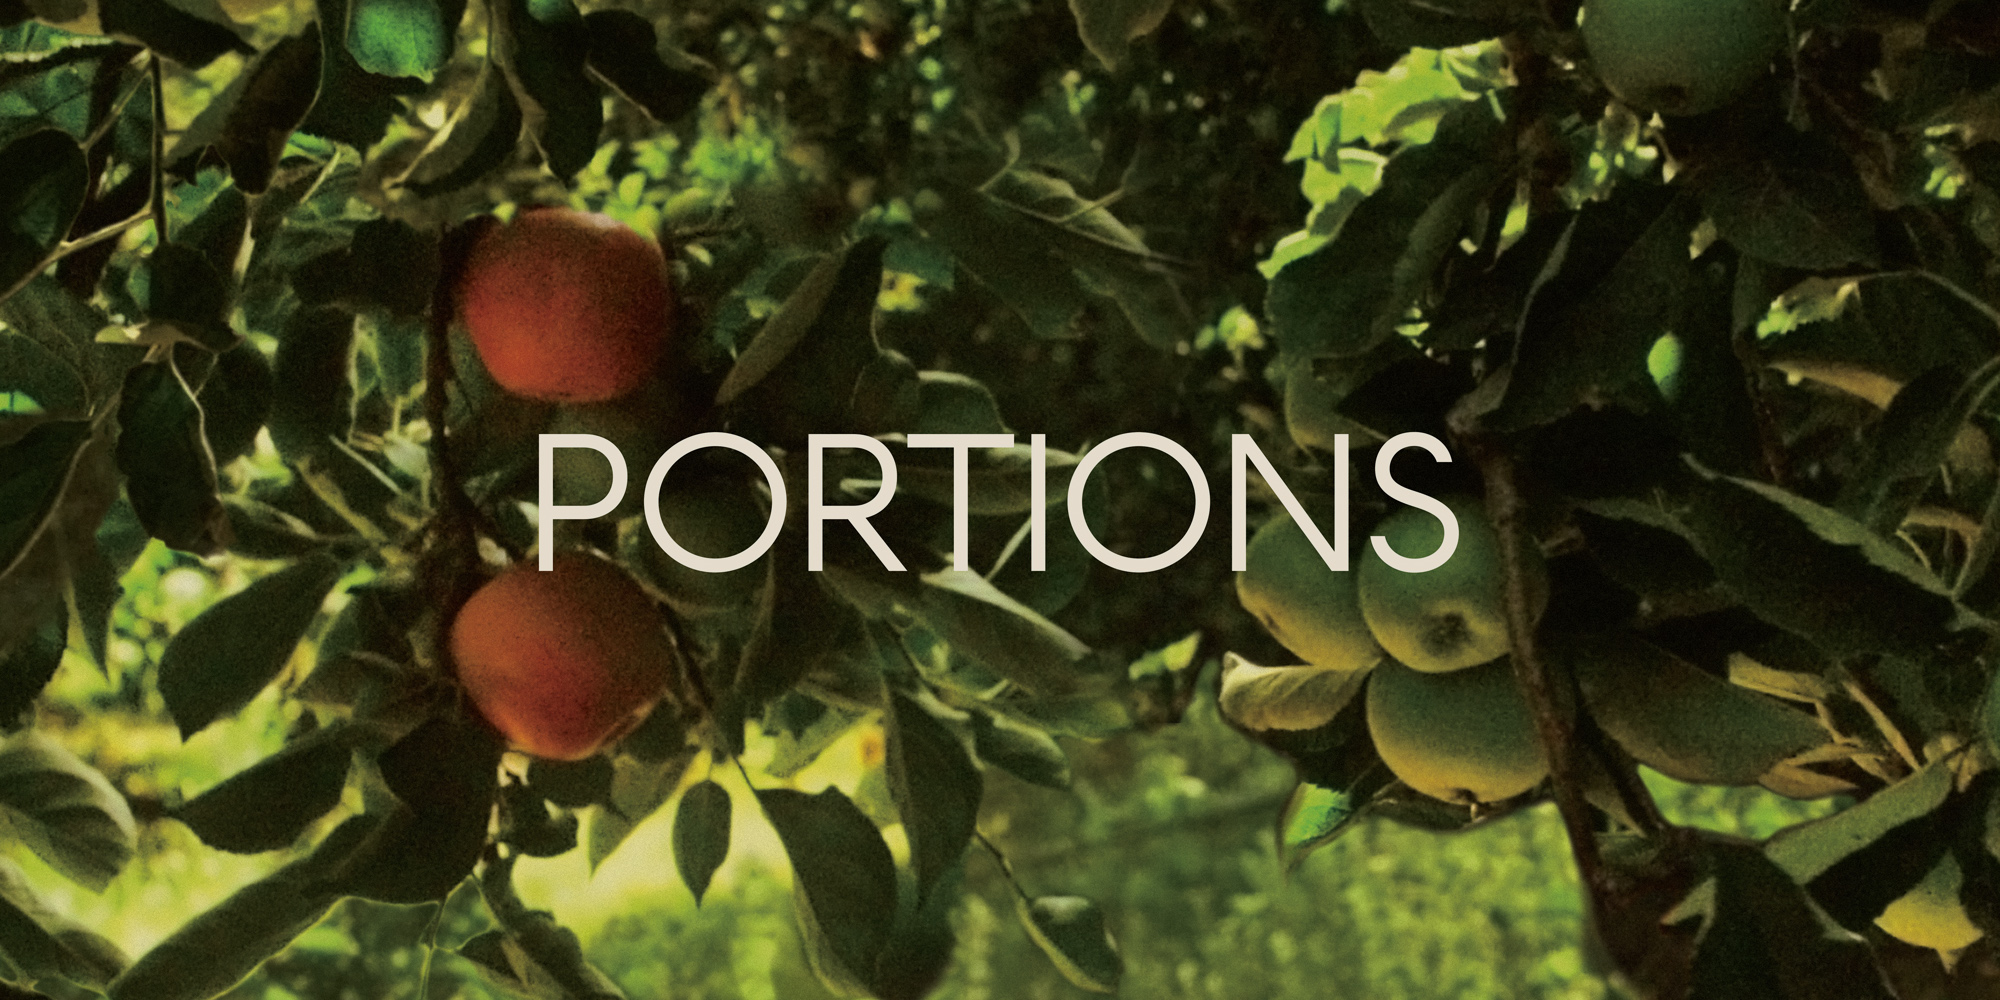 Portions  | Poster Design | EPK | Promotional Materials